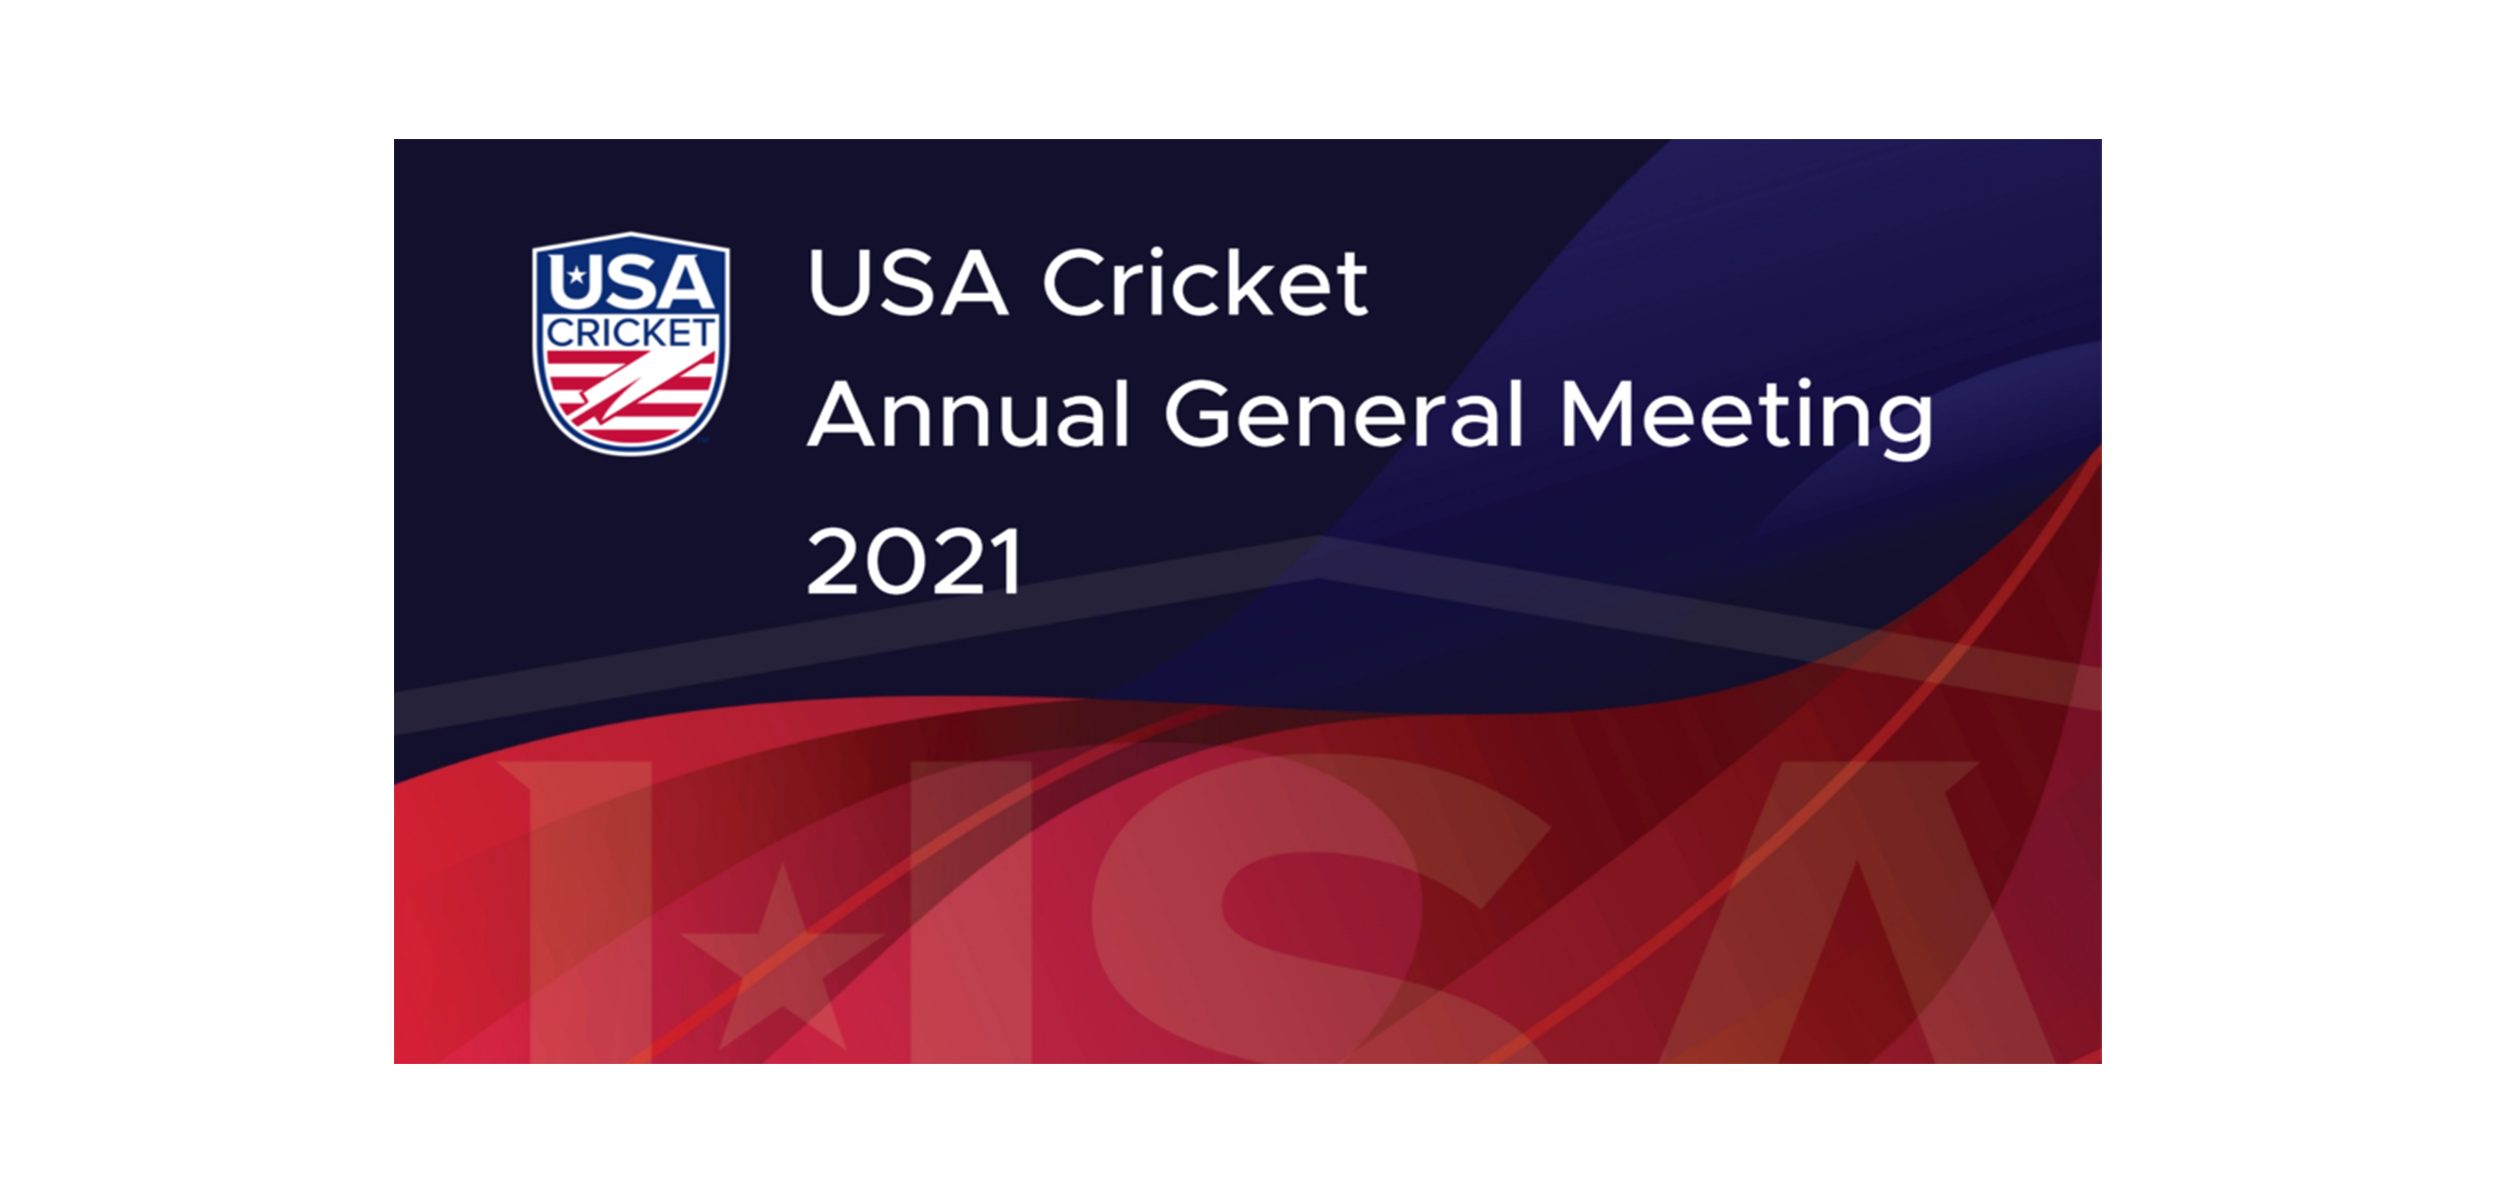 USA Cricket Annual General Meeting